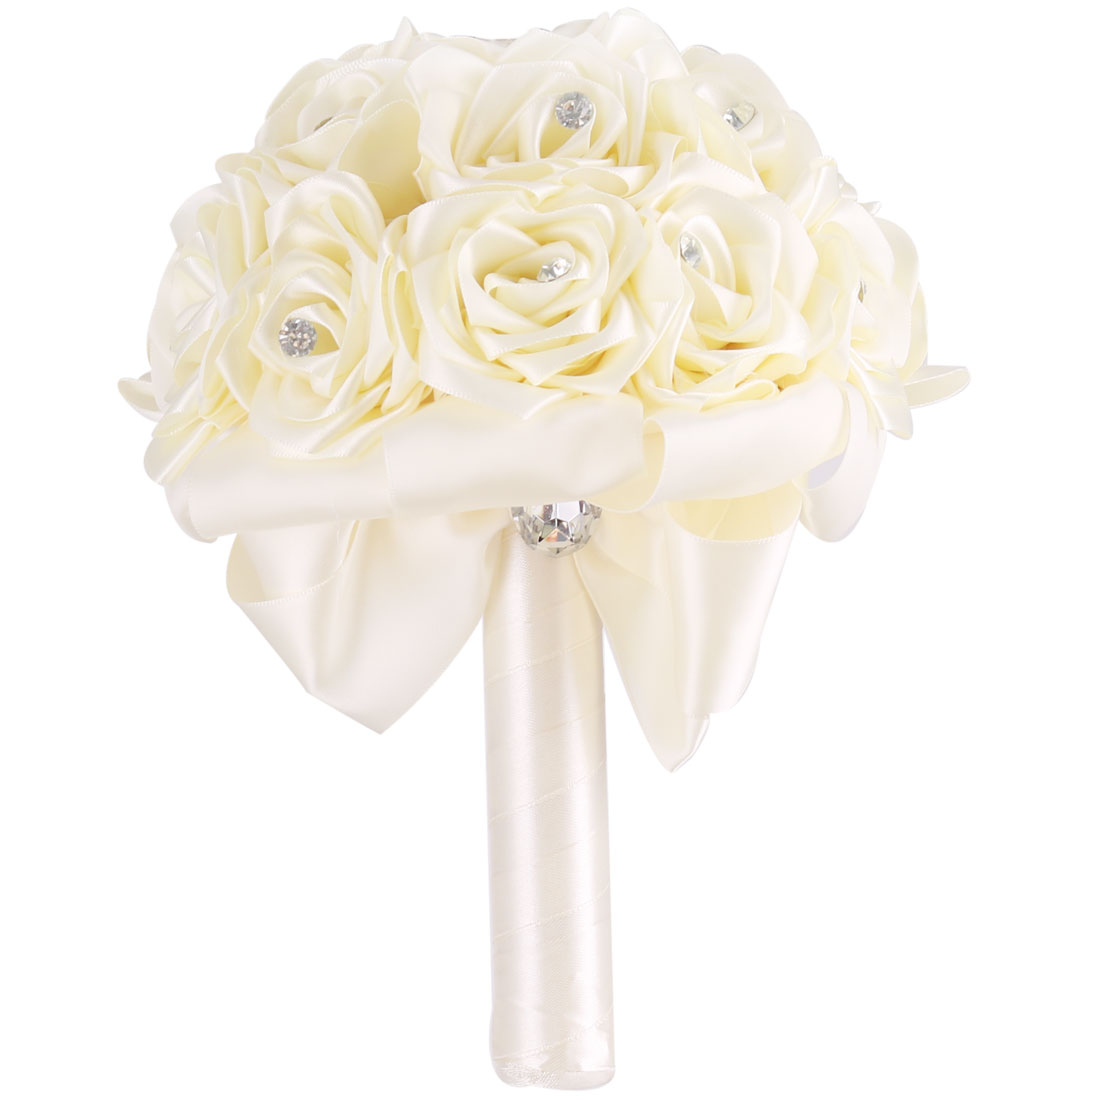 Wedding Party Foam Buds Handhold Roses Bouquet Craft Artificial Flower Decor Beige